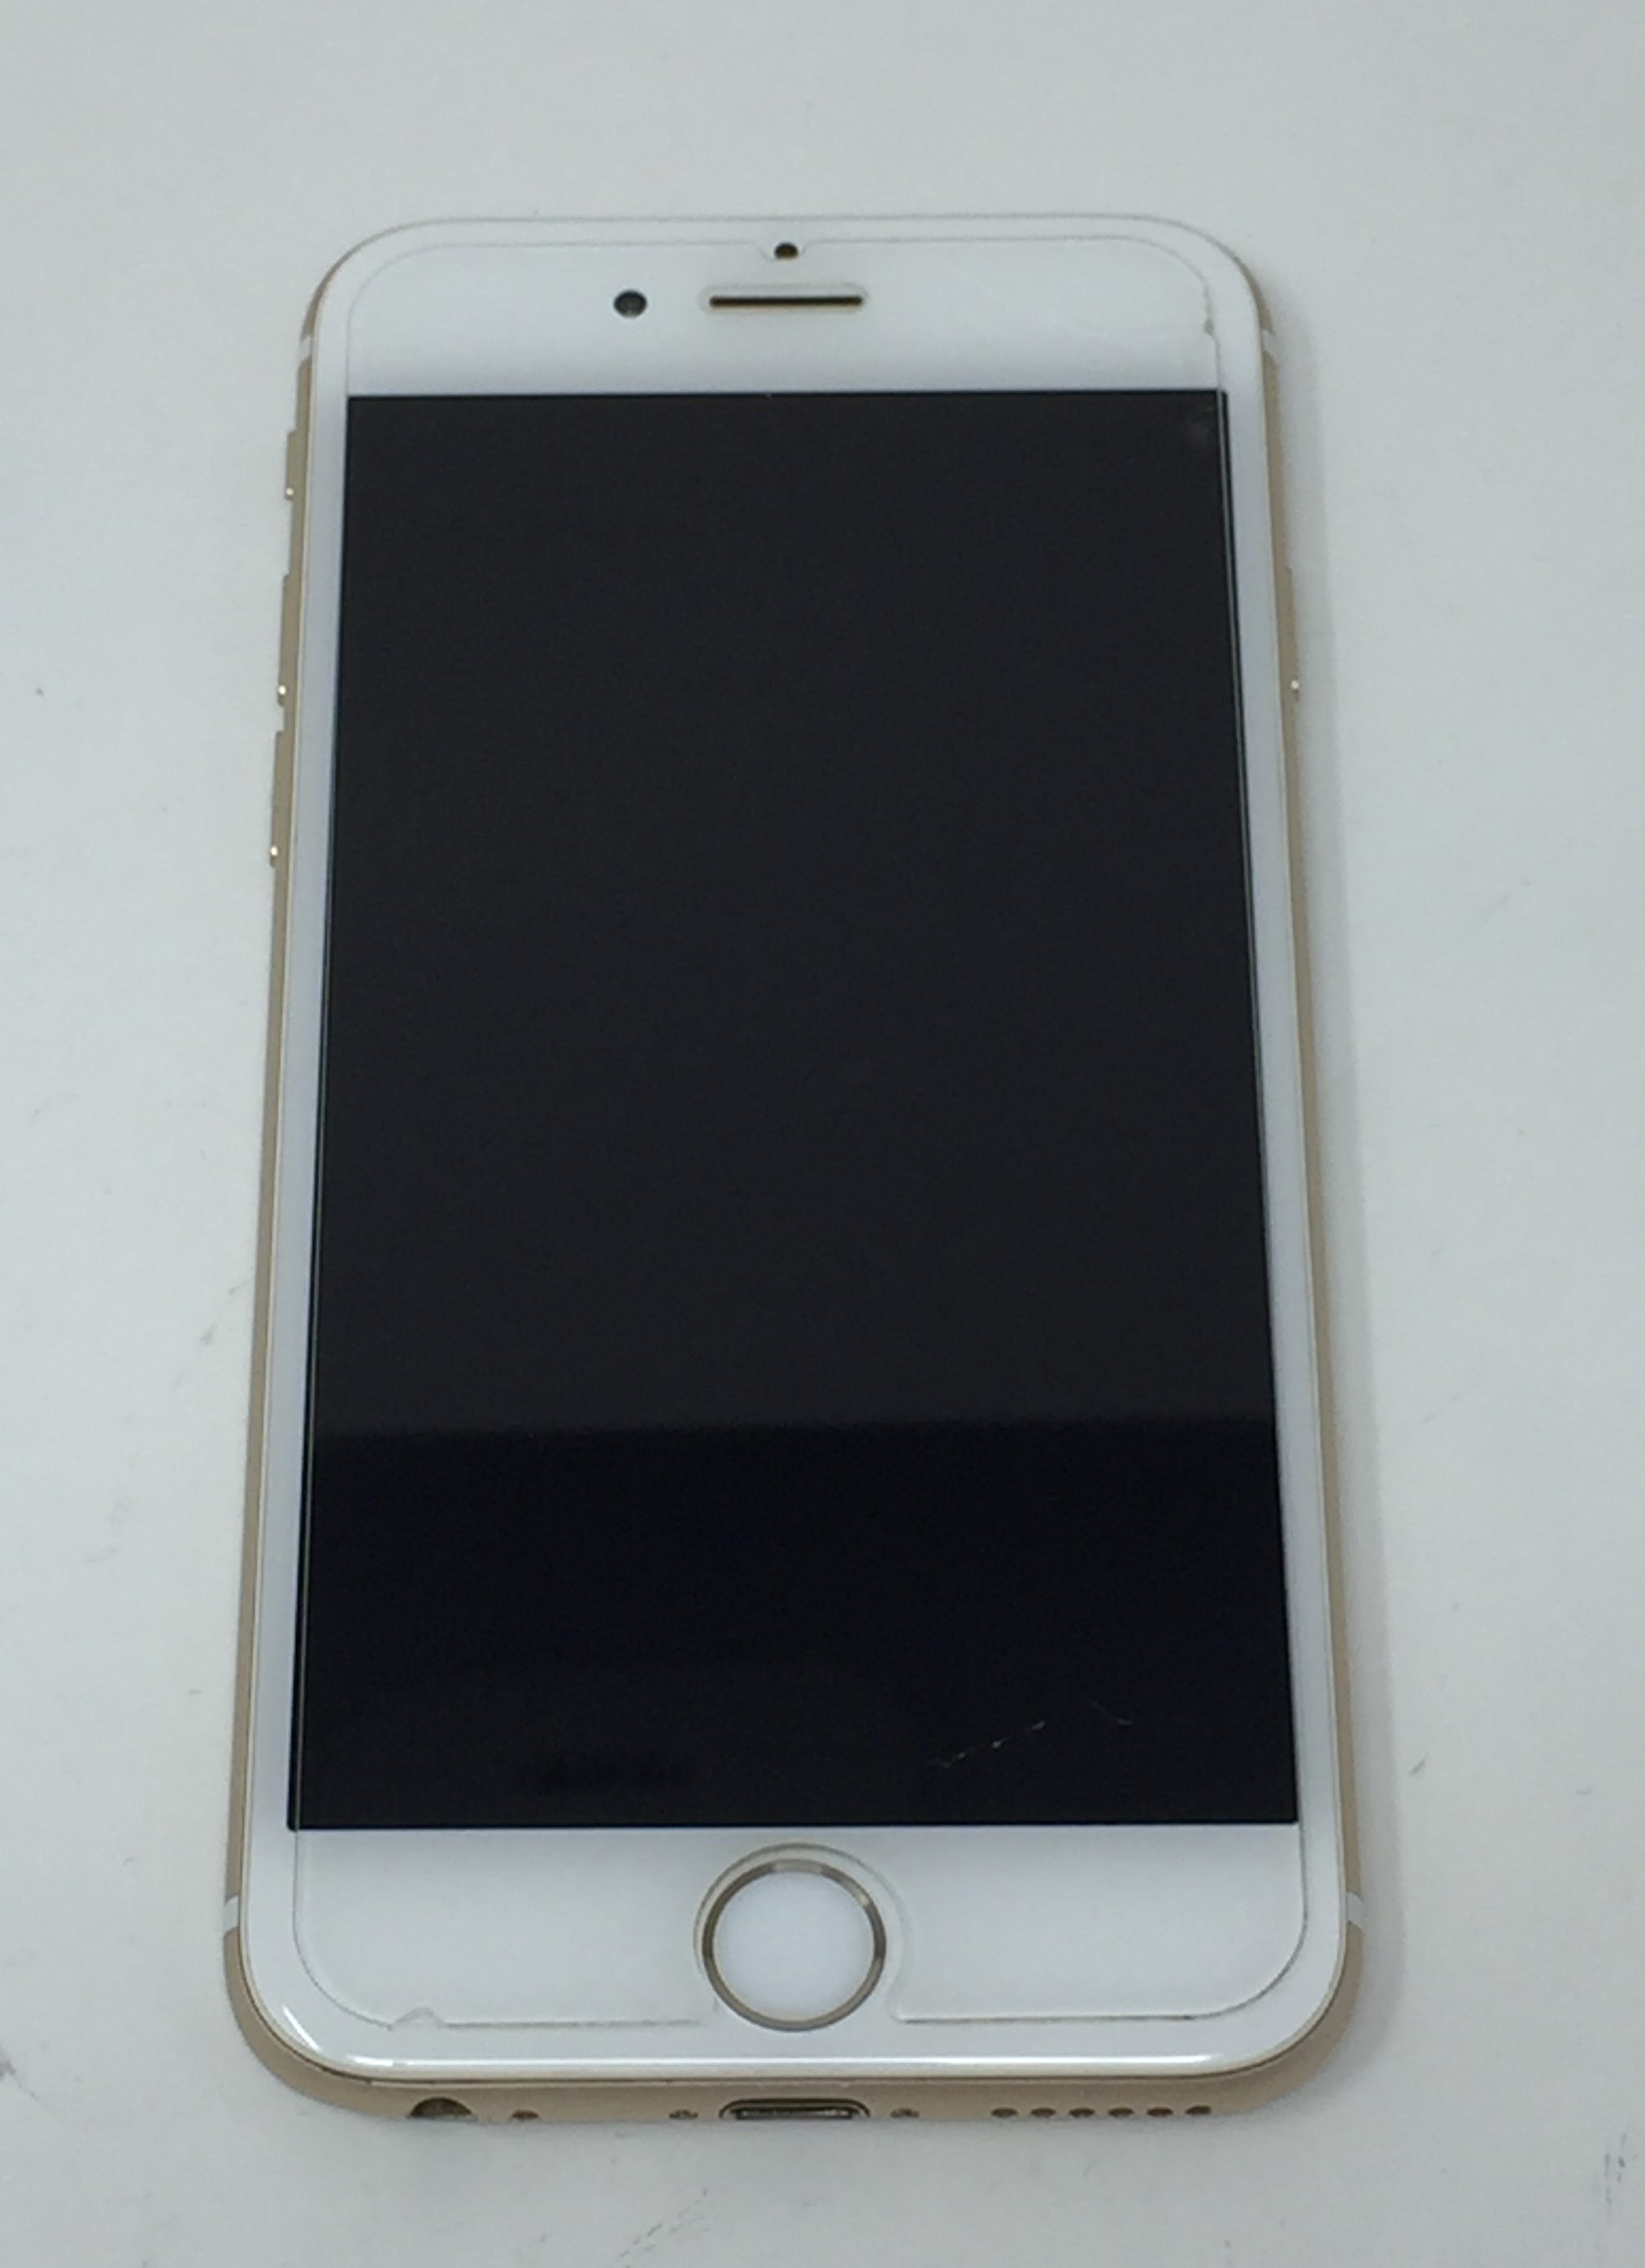 iPhone 6 16GB, 16GB, GOLD, Afbeelding 1